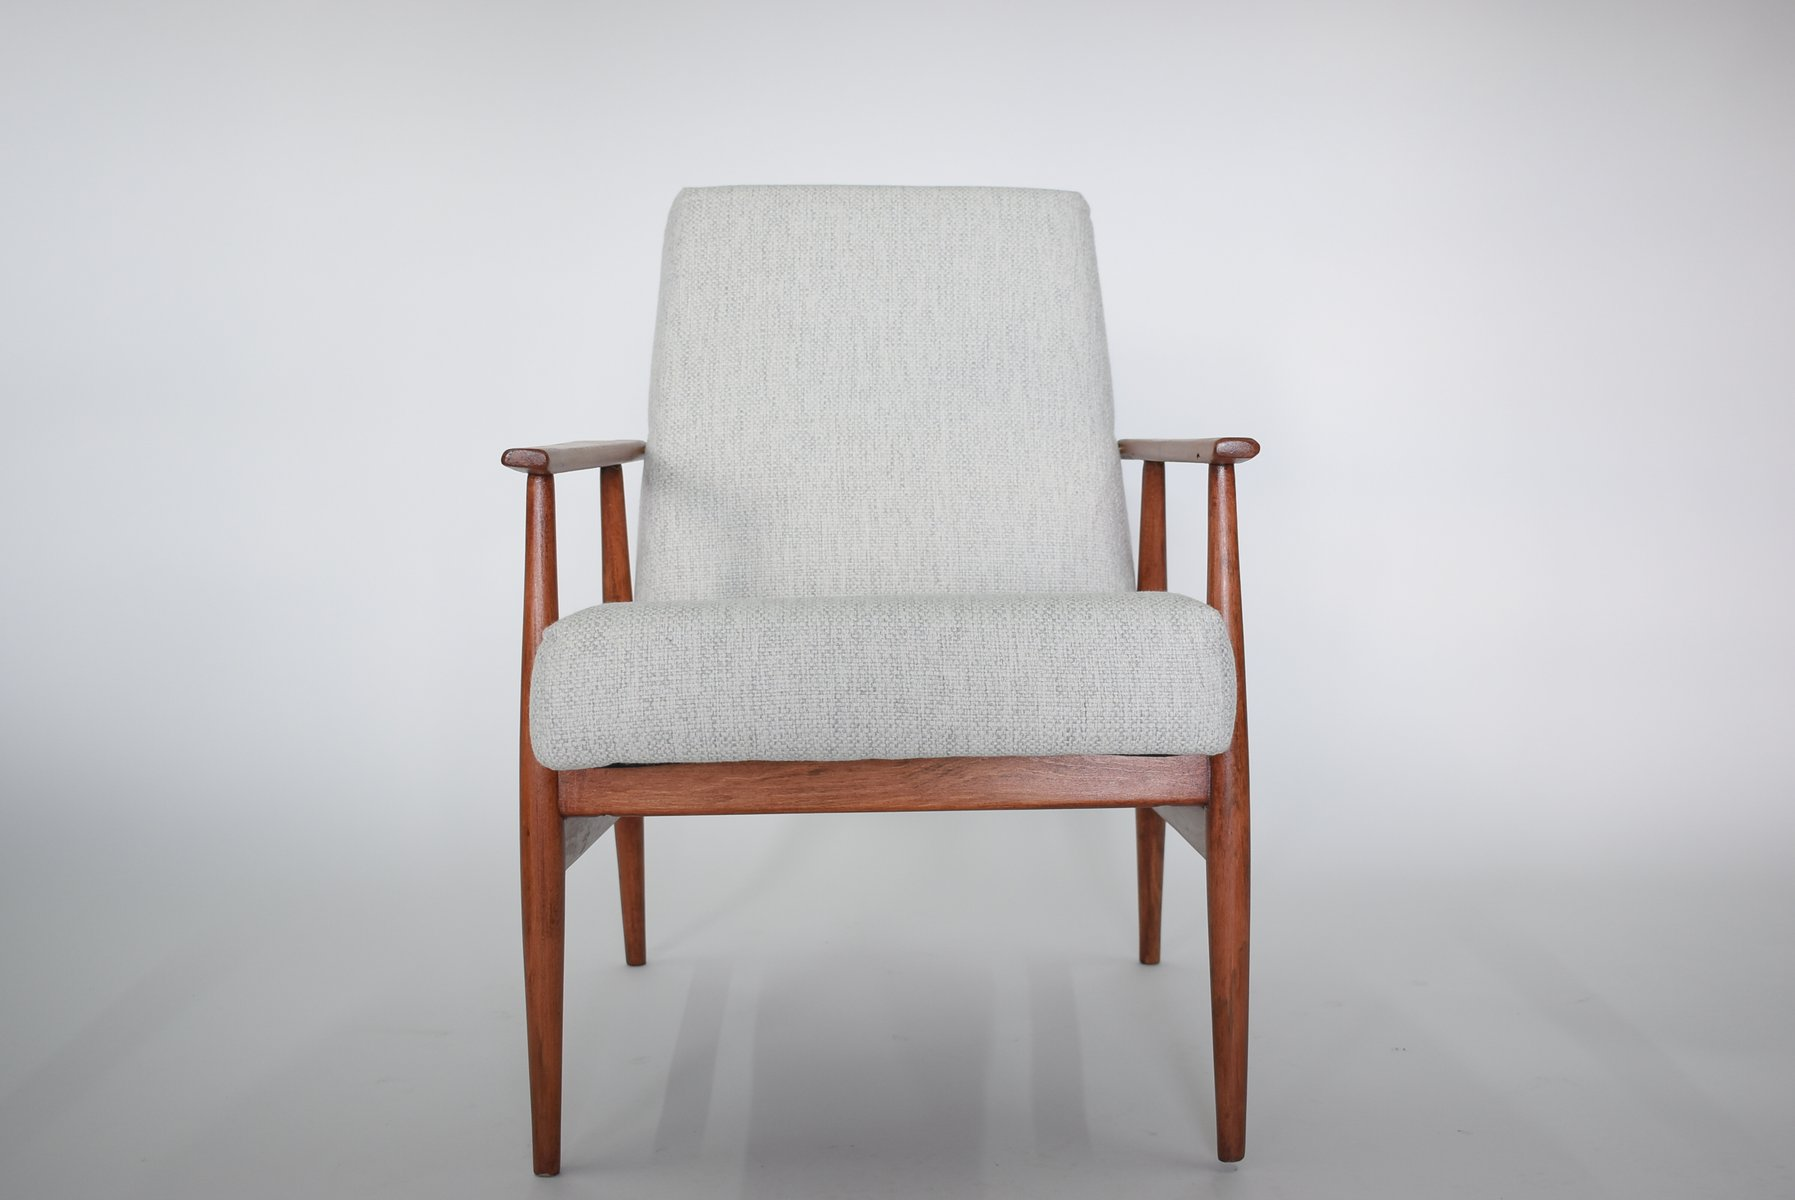 Captivating Polish Light Grey Armchair By H. Lis, 1960s For Sale At Pamono